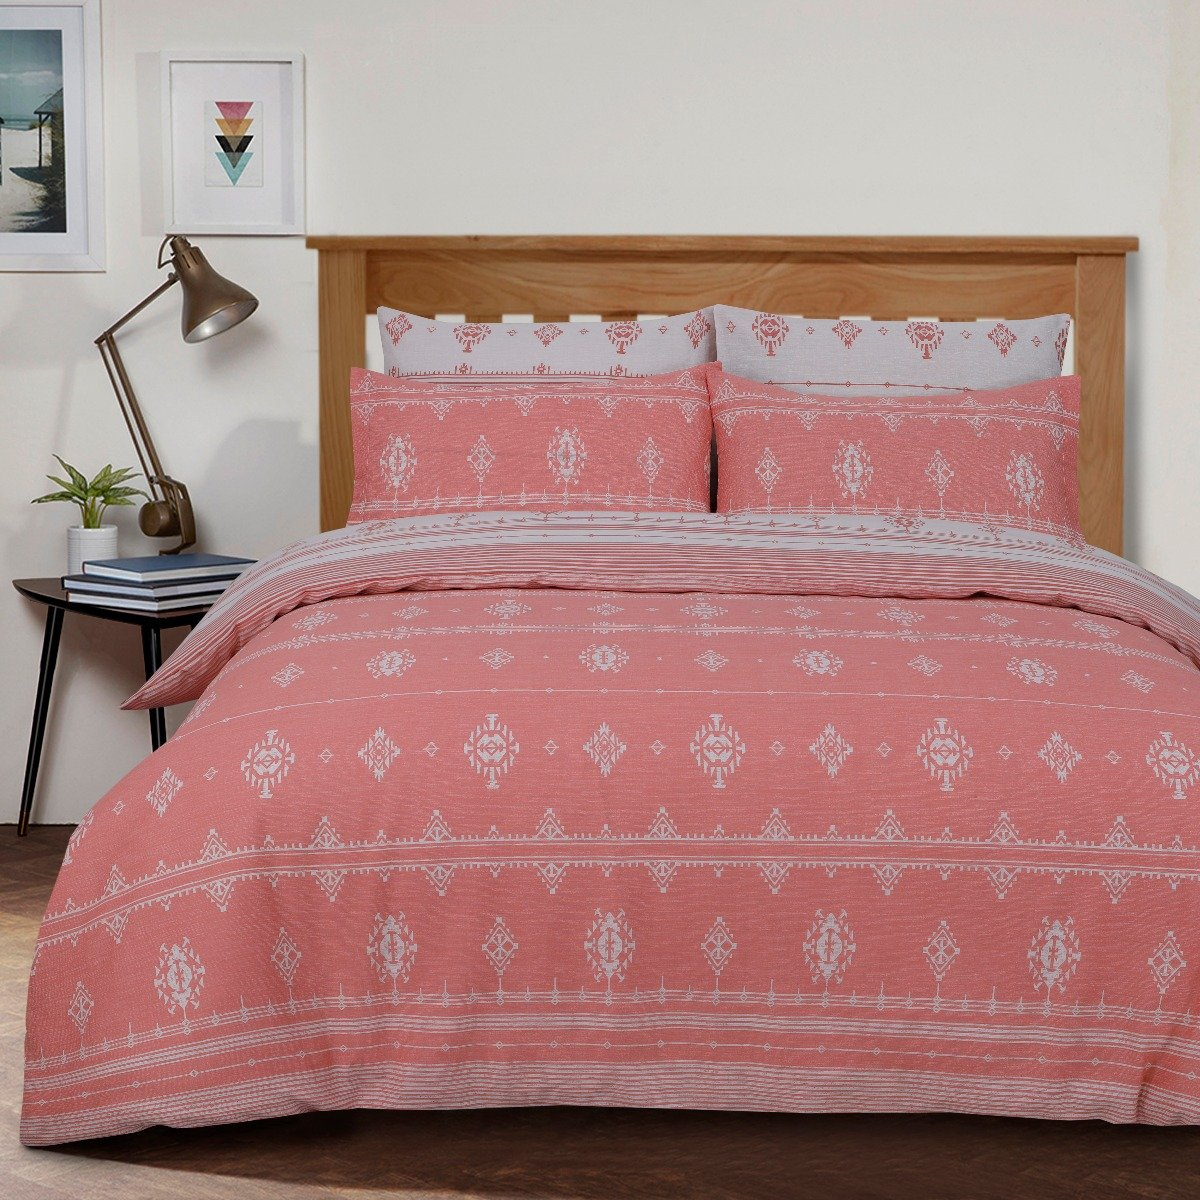 Inka Geo Peach Bedding - Reversible Duvet Cover and Pillowcase Set